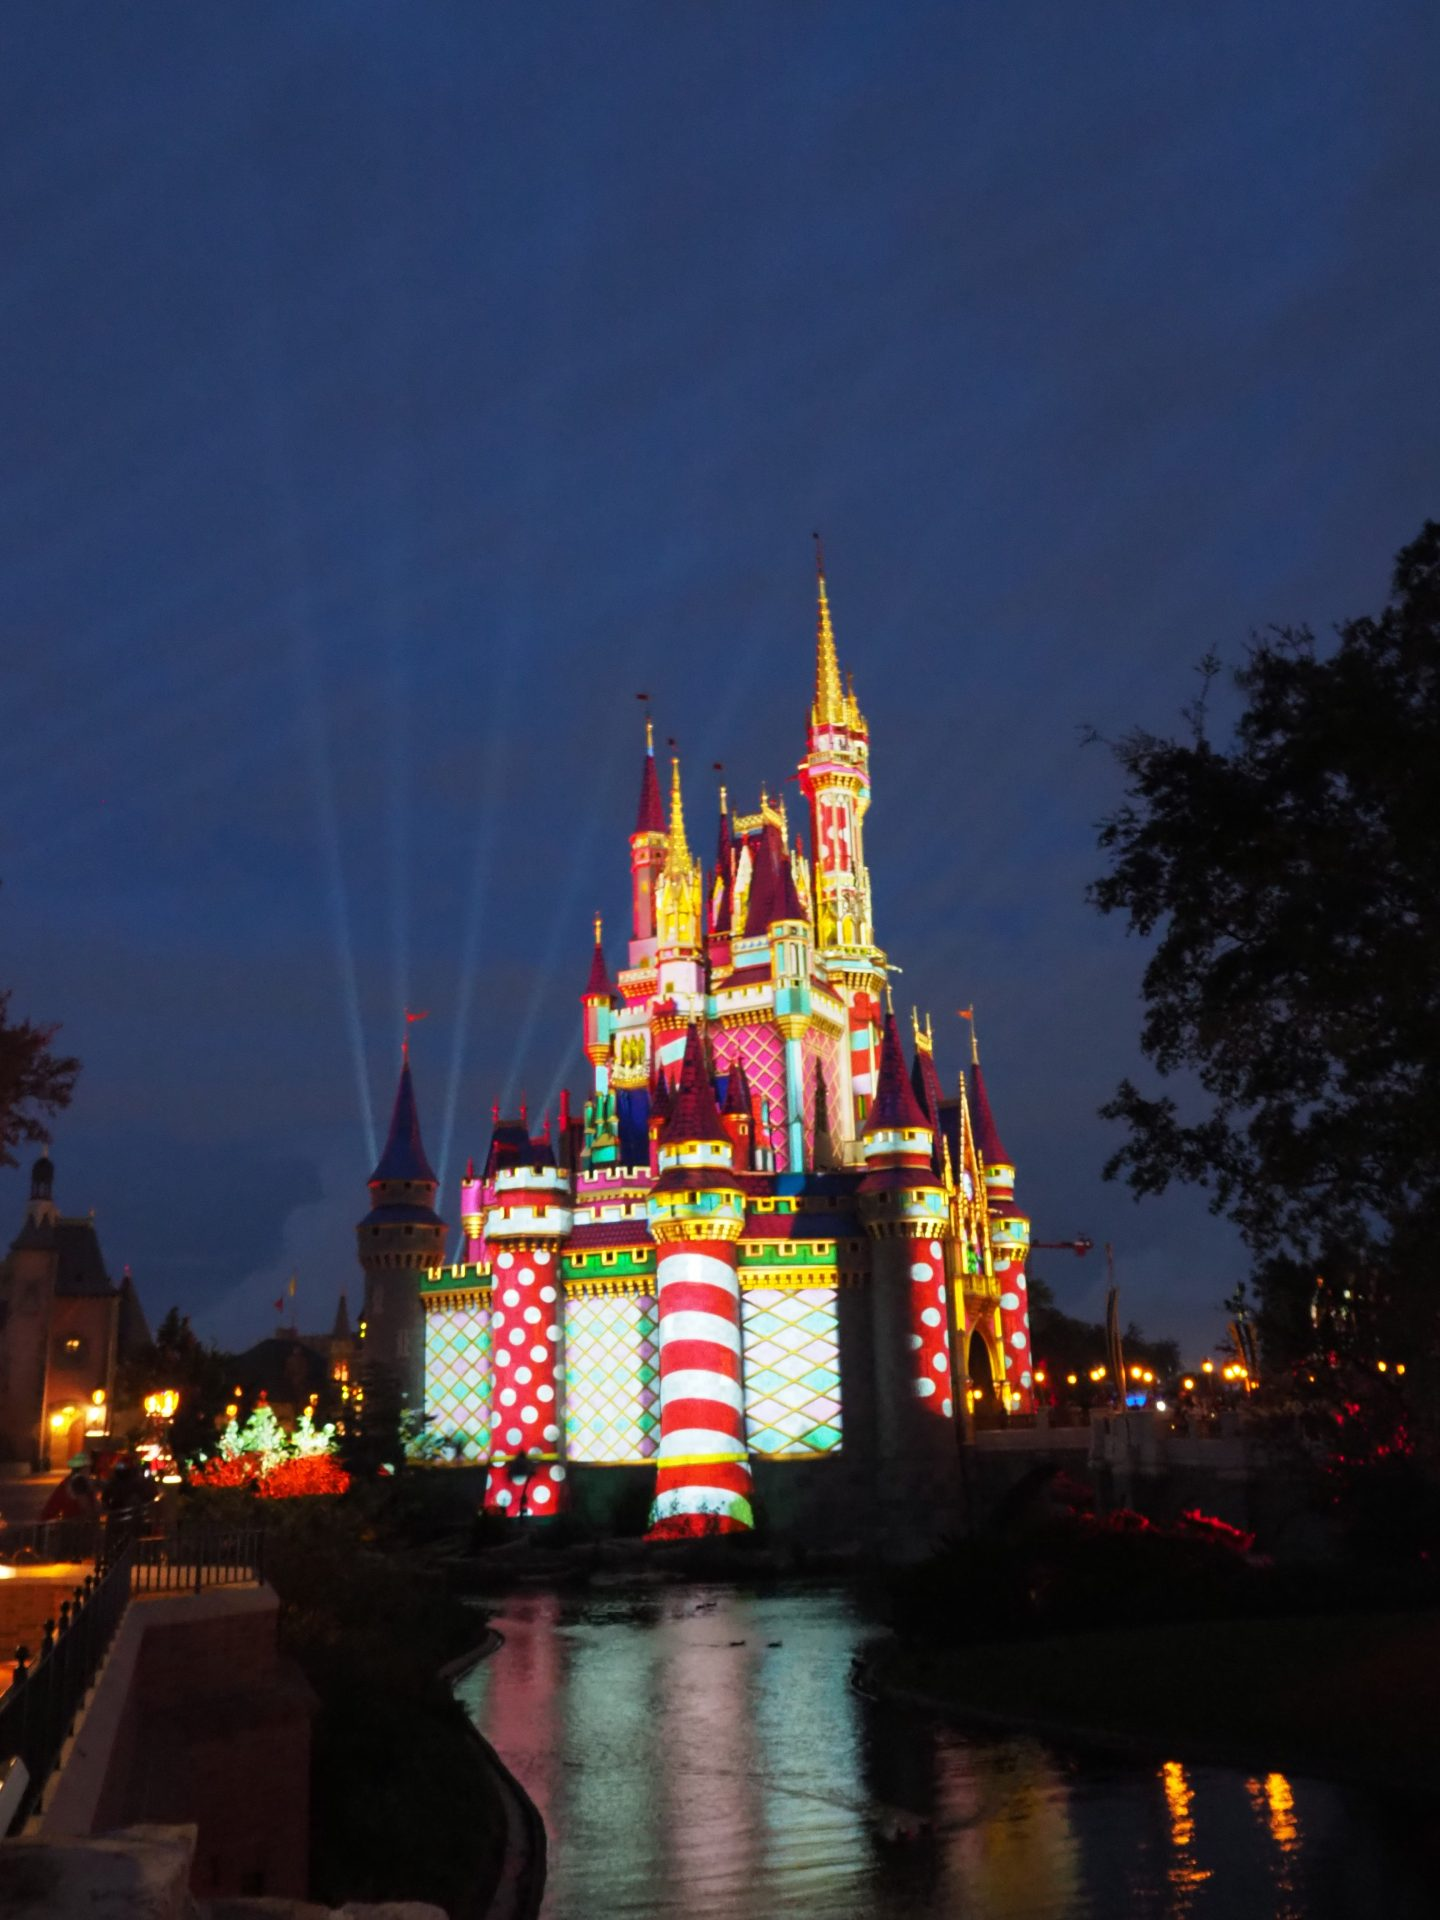 disney castle projection show